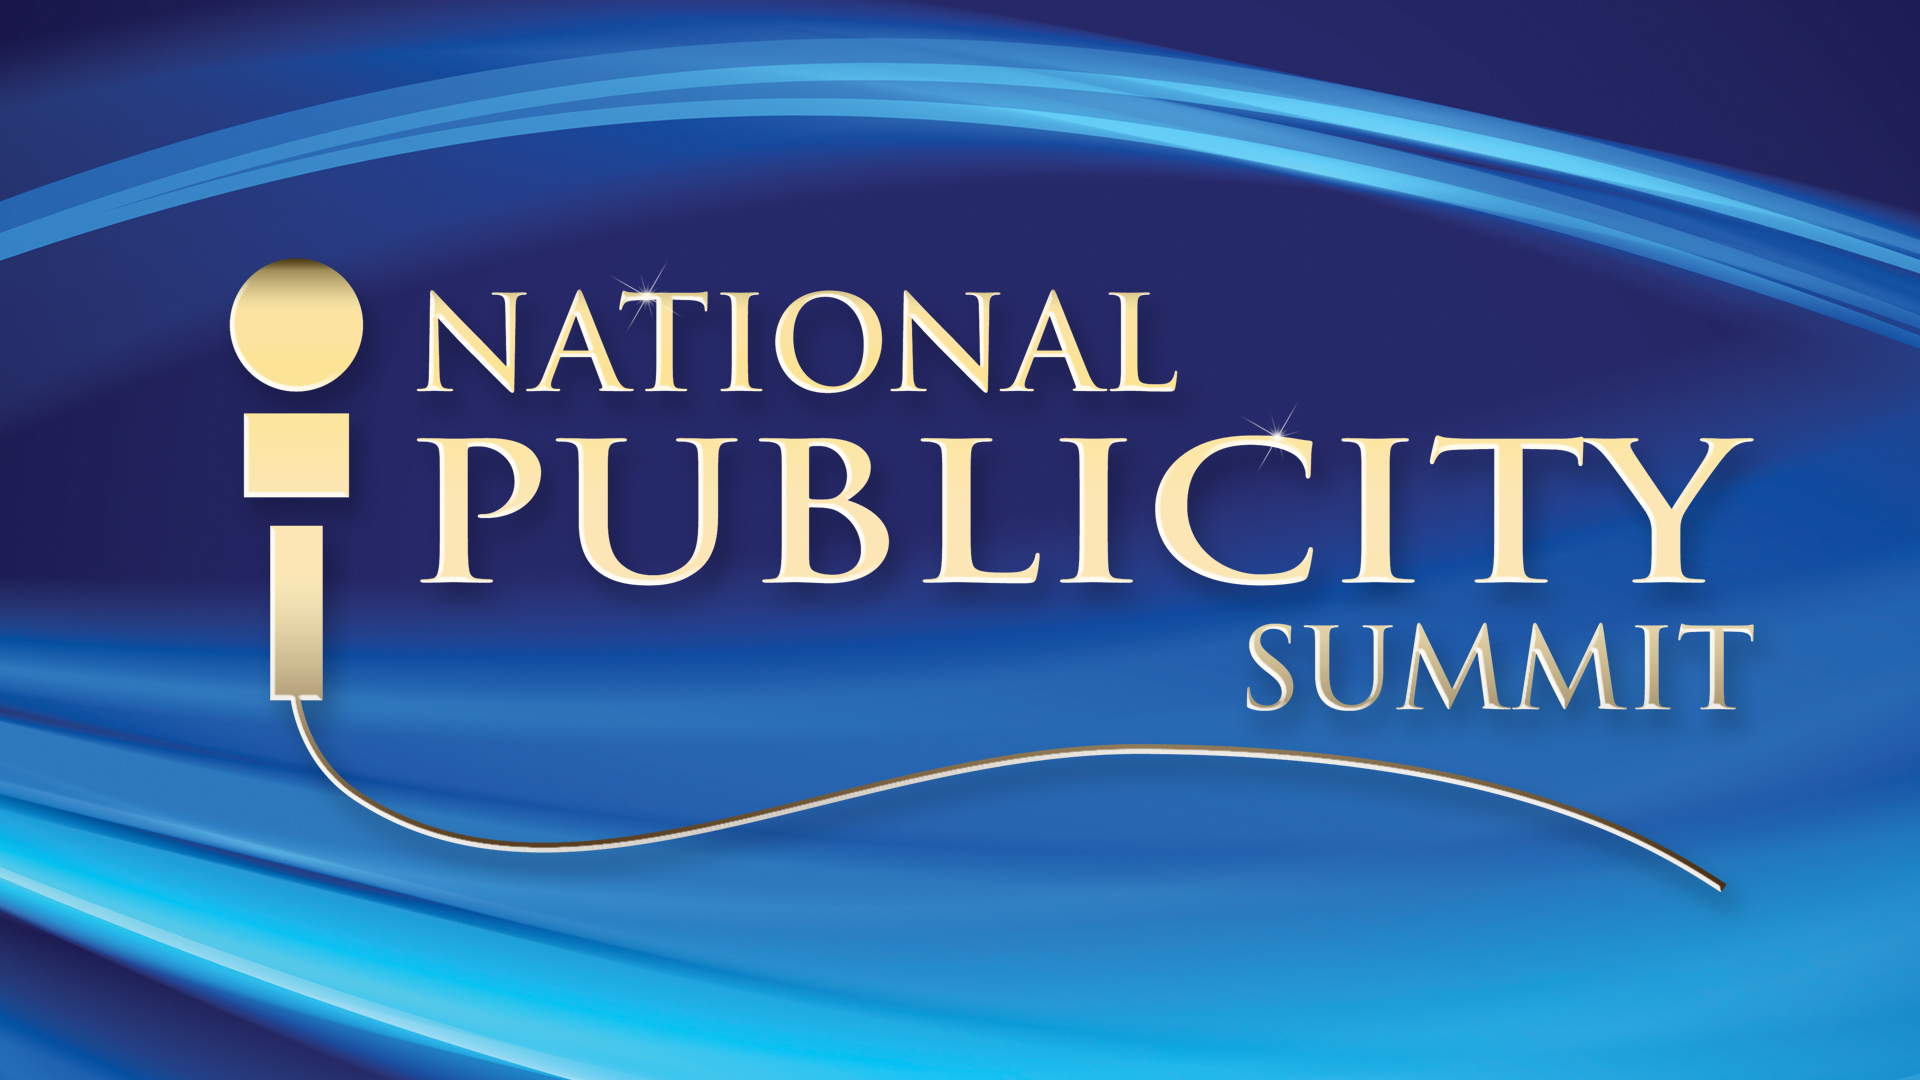 National Publicity Summit